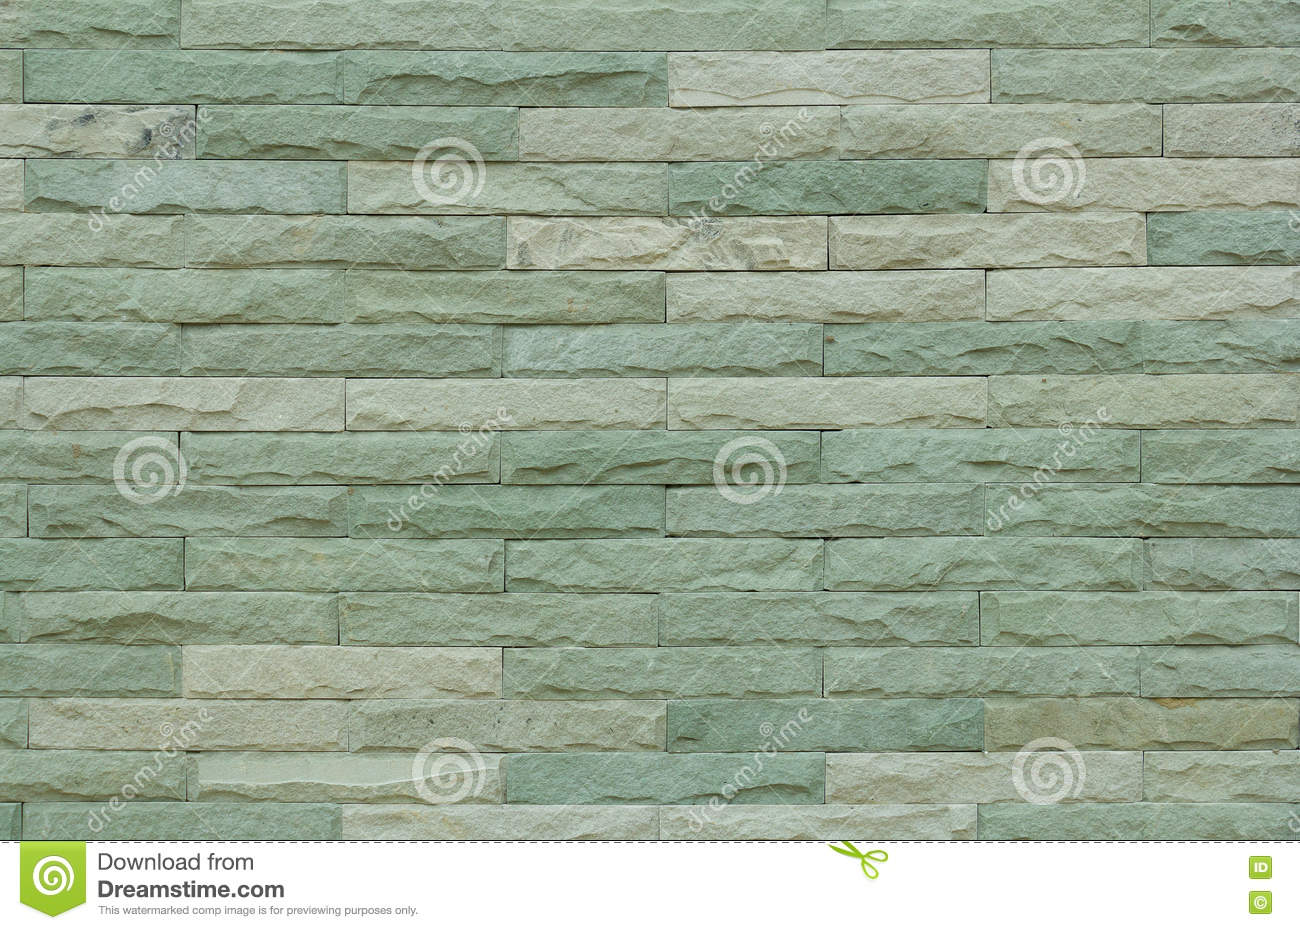 Decorative Stone Wall green decorative stone wall texture background stock photo - image